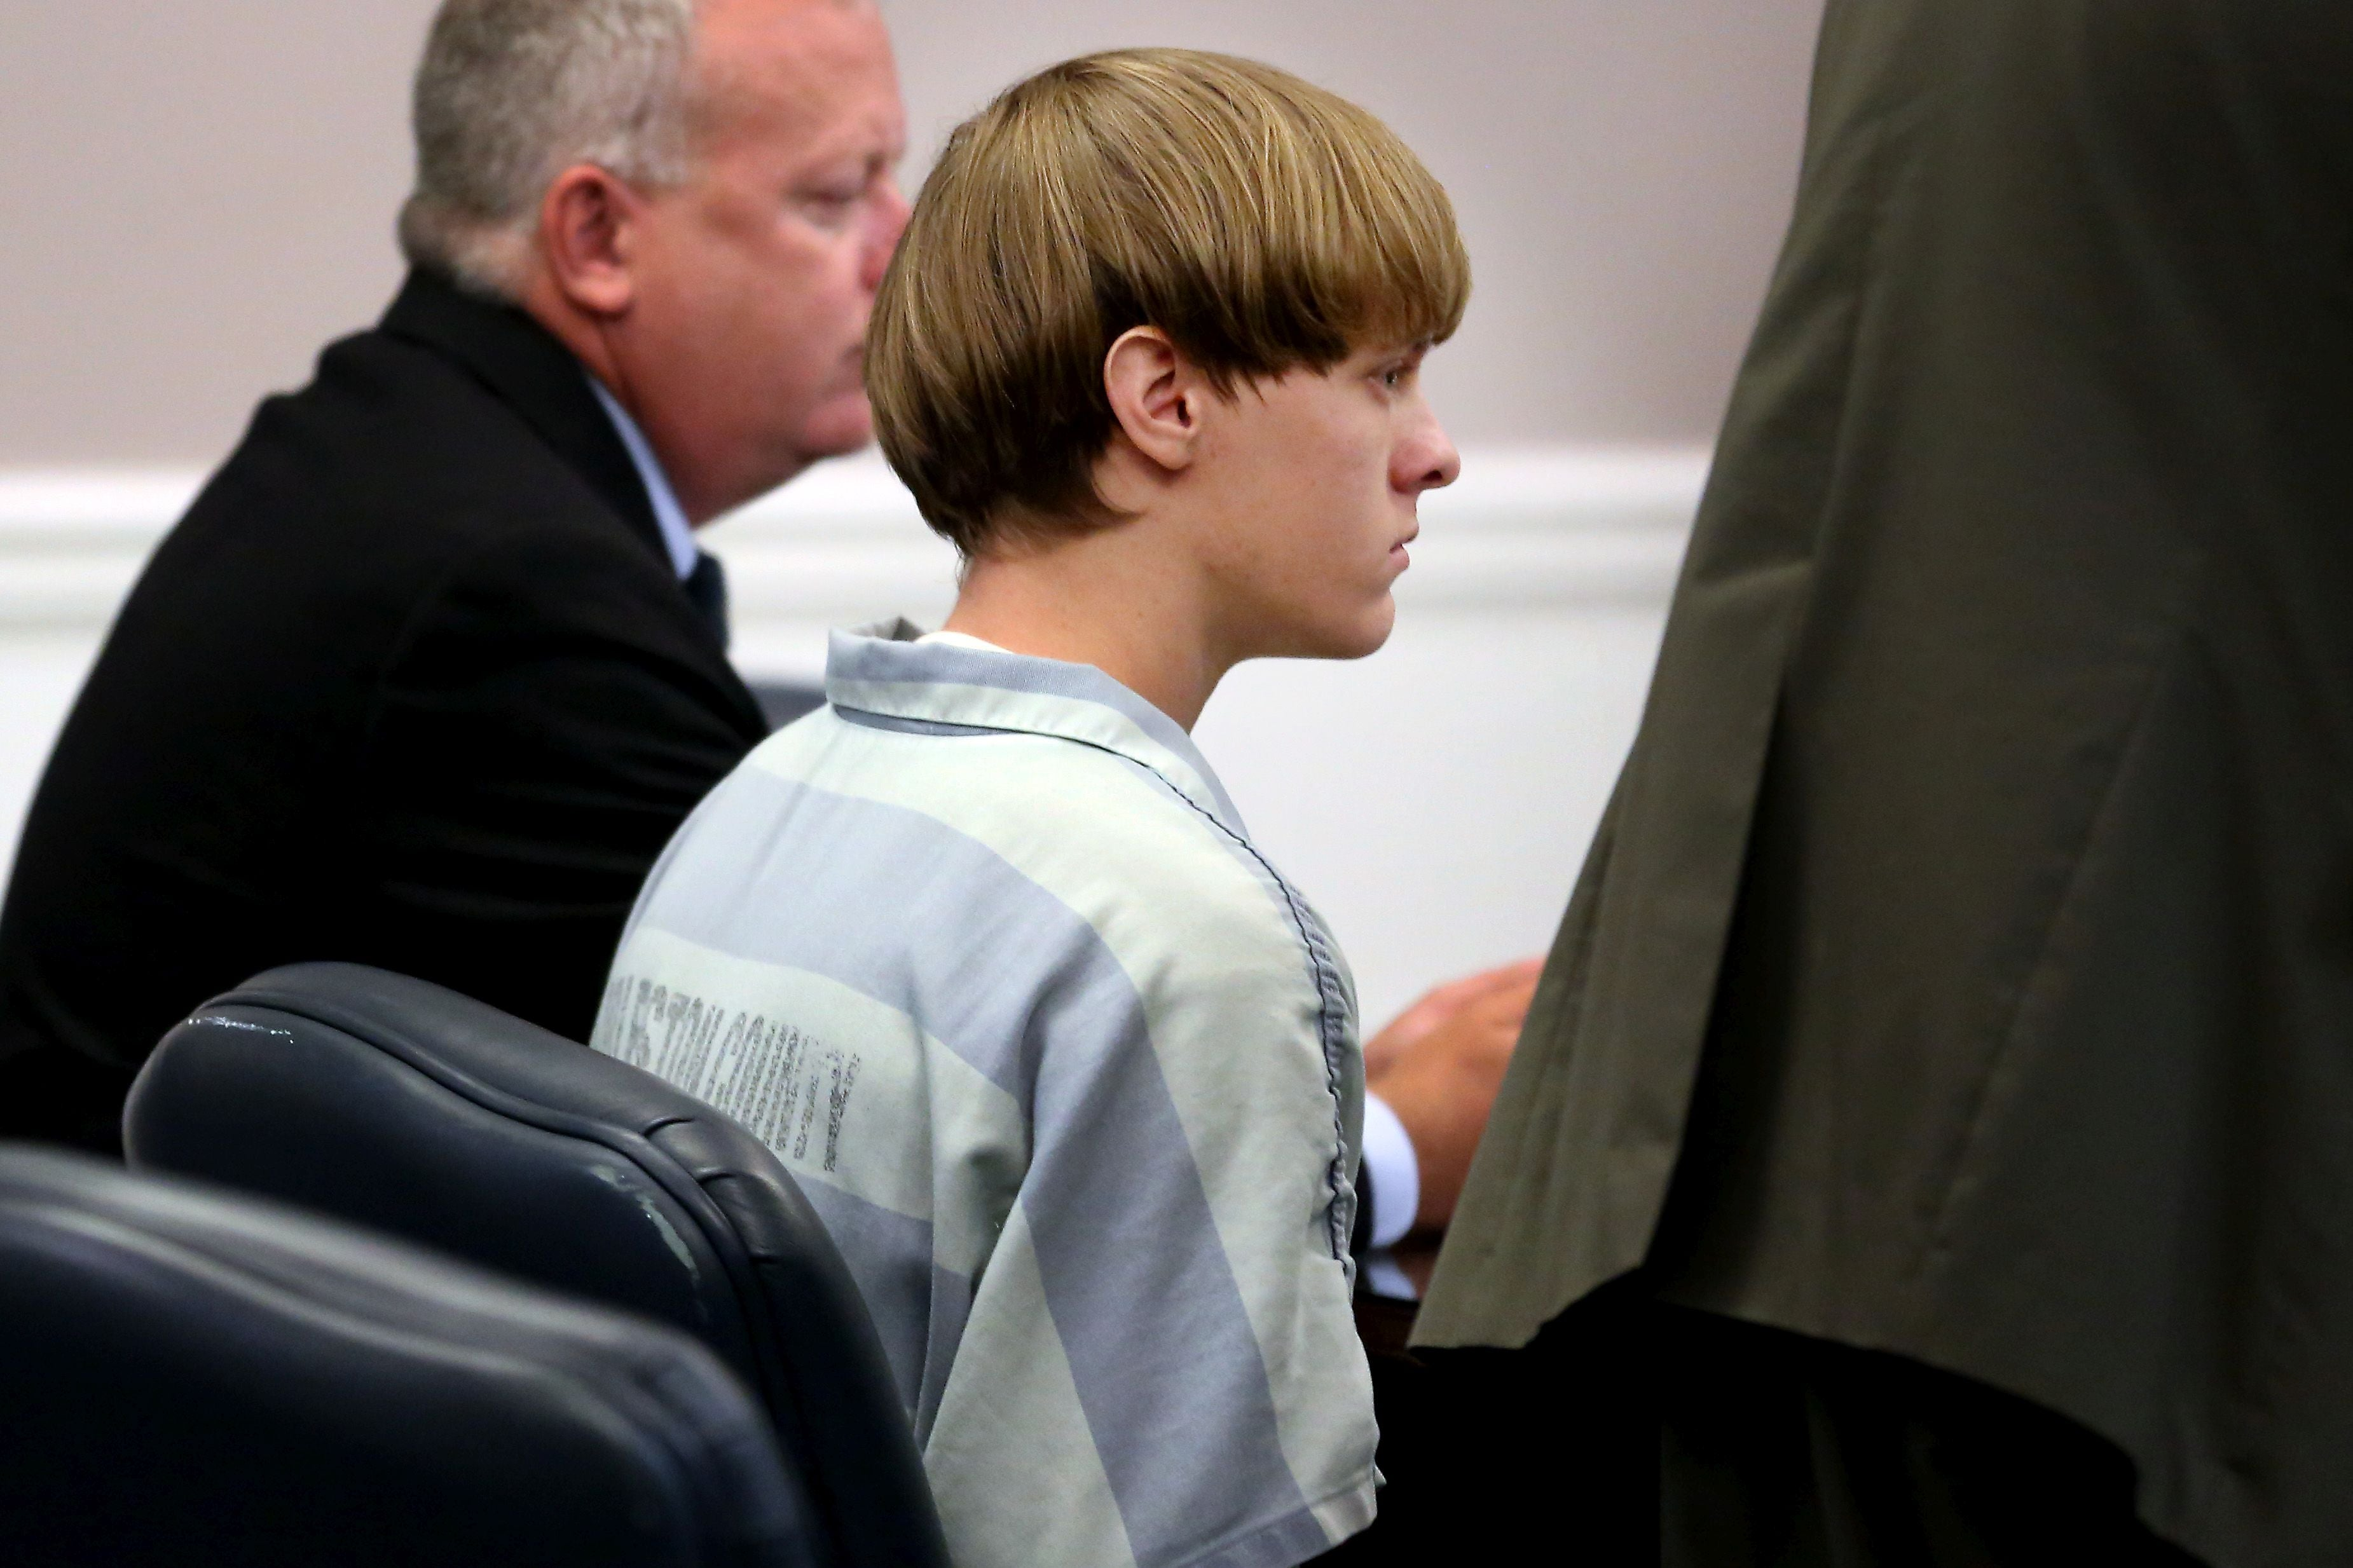 Mother Emanuel Shooter Dylann Roof Had Handwritten List Of Black Churches He Considered Targeting